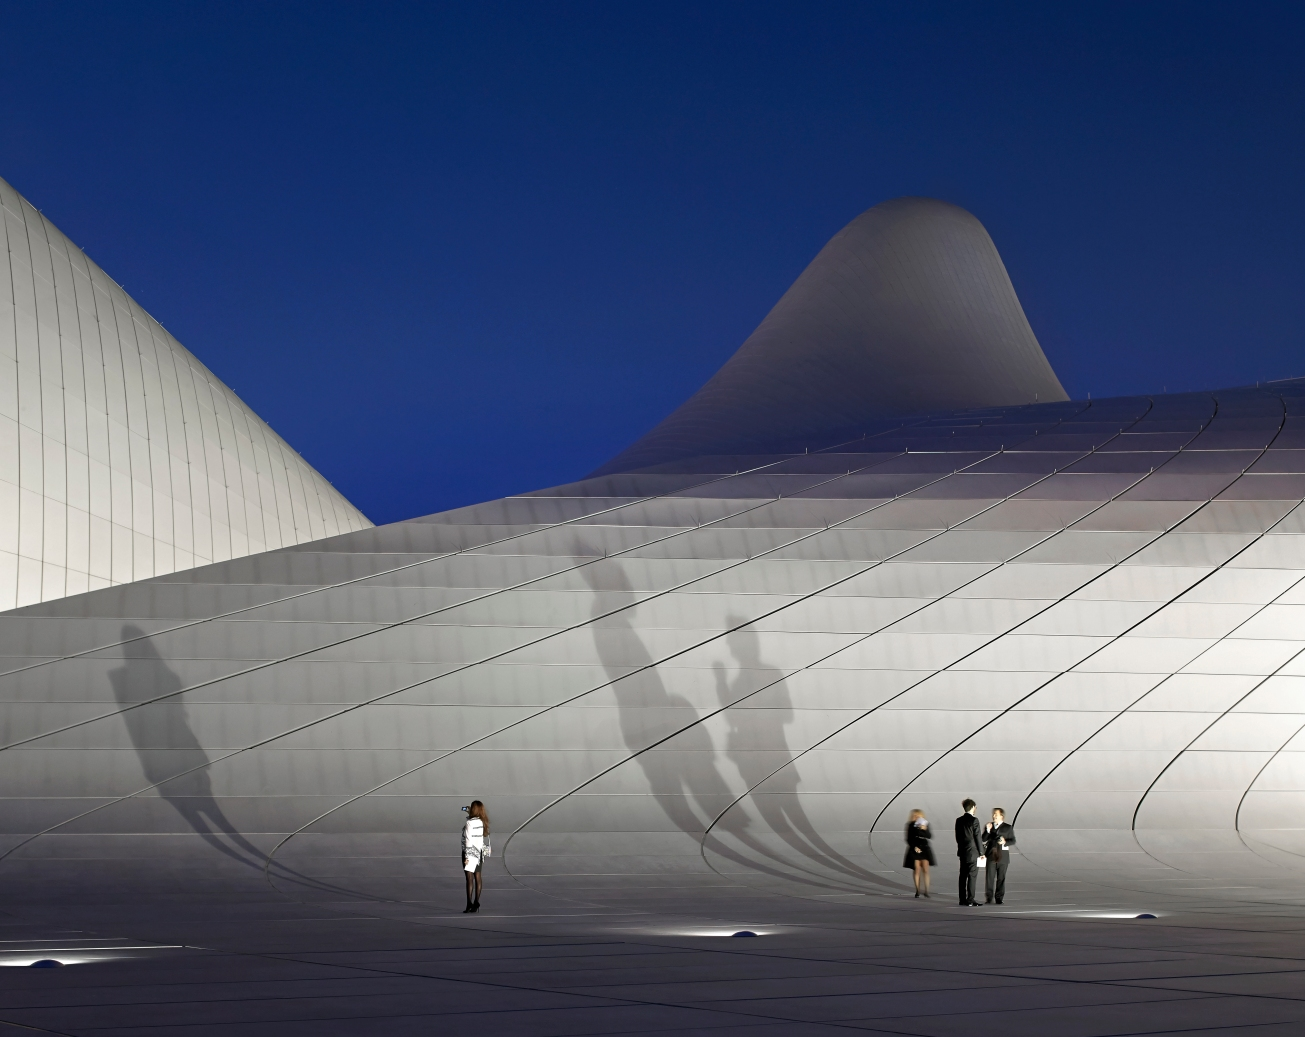 Heydar Aliyev Center Category: Buildings in use  Photographer: Hufton + Crow  Architect: Zaha Hadid Architects  Location: Baku - Azerbaijan